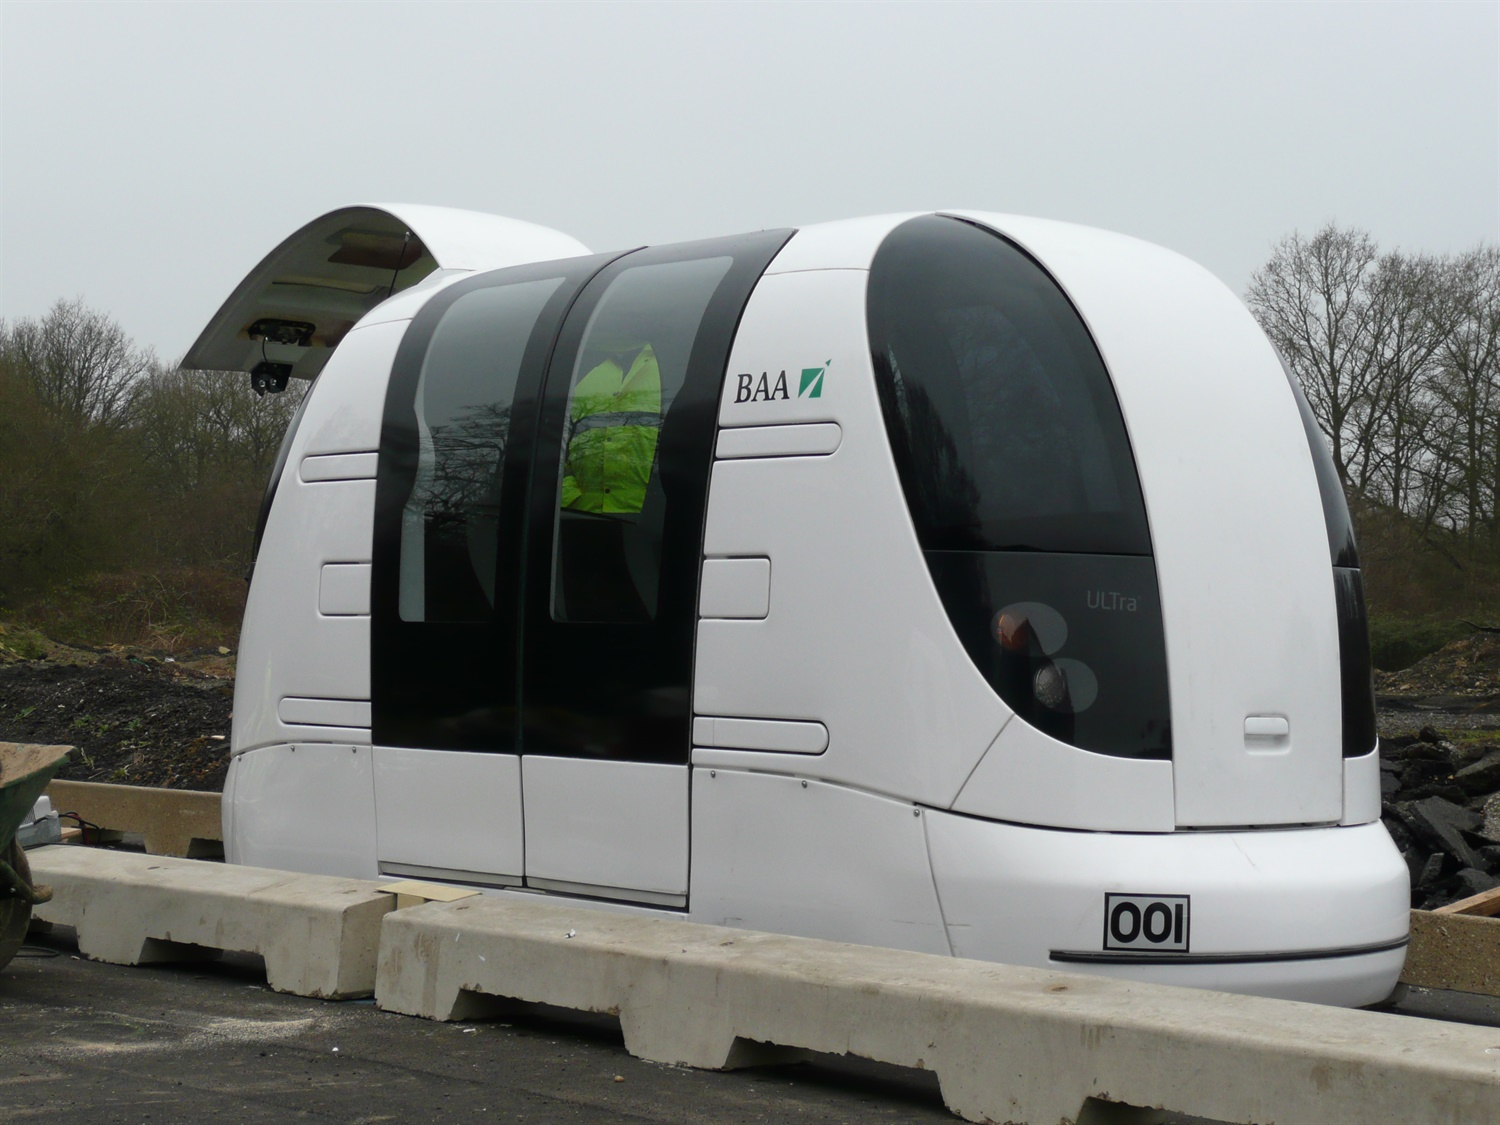 Glasgow Airport rail link plans could be ditched for rapid shuttle pod system